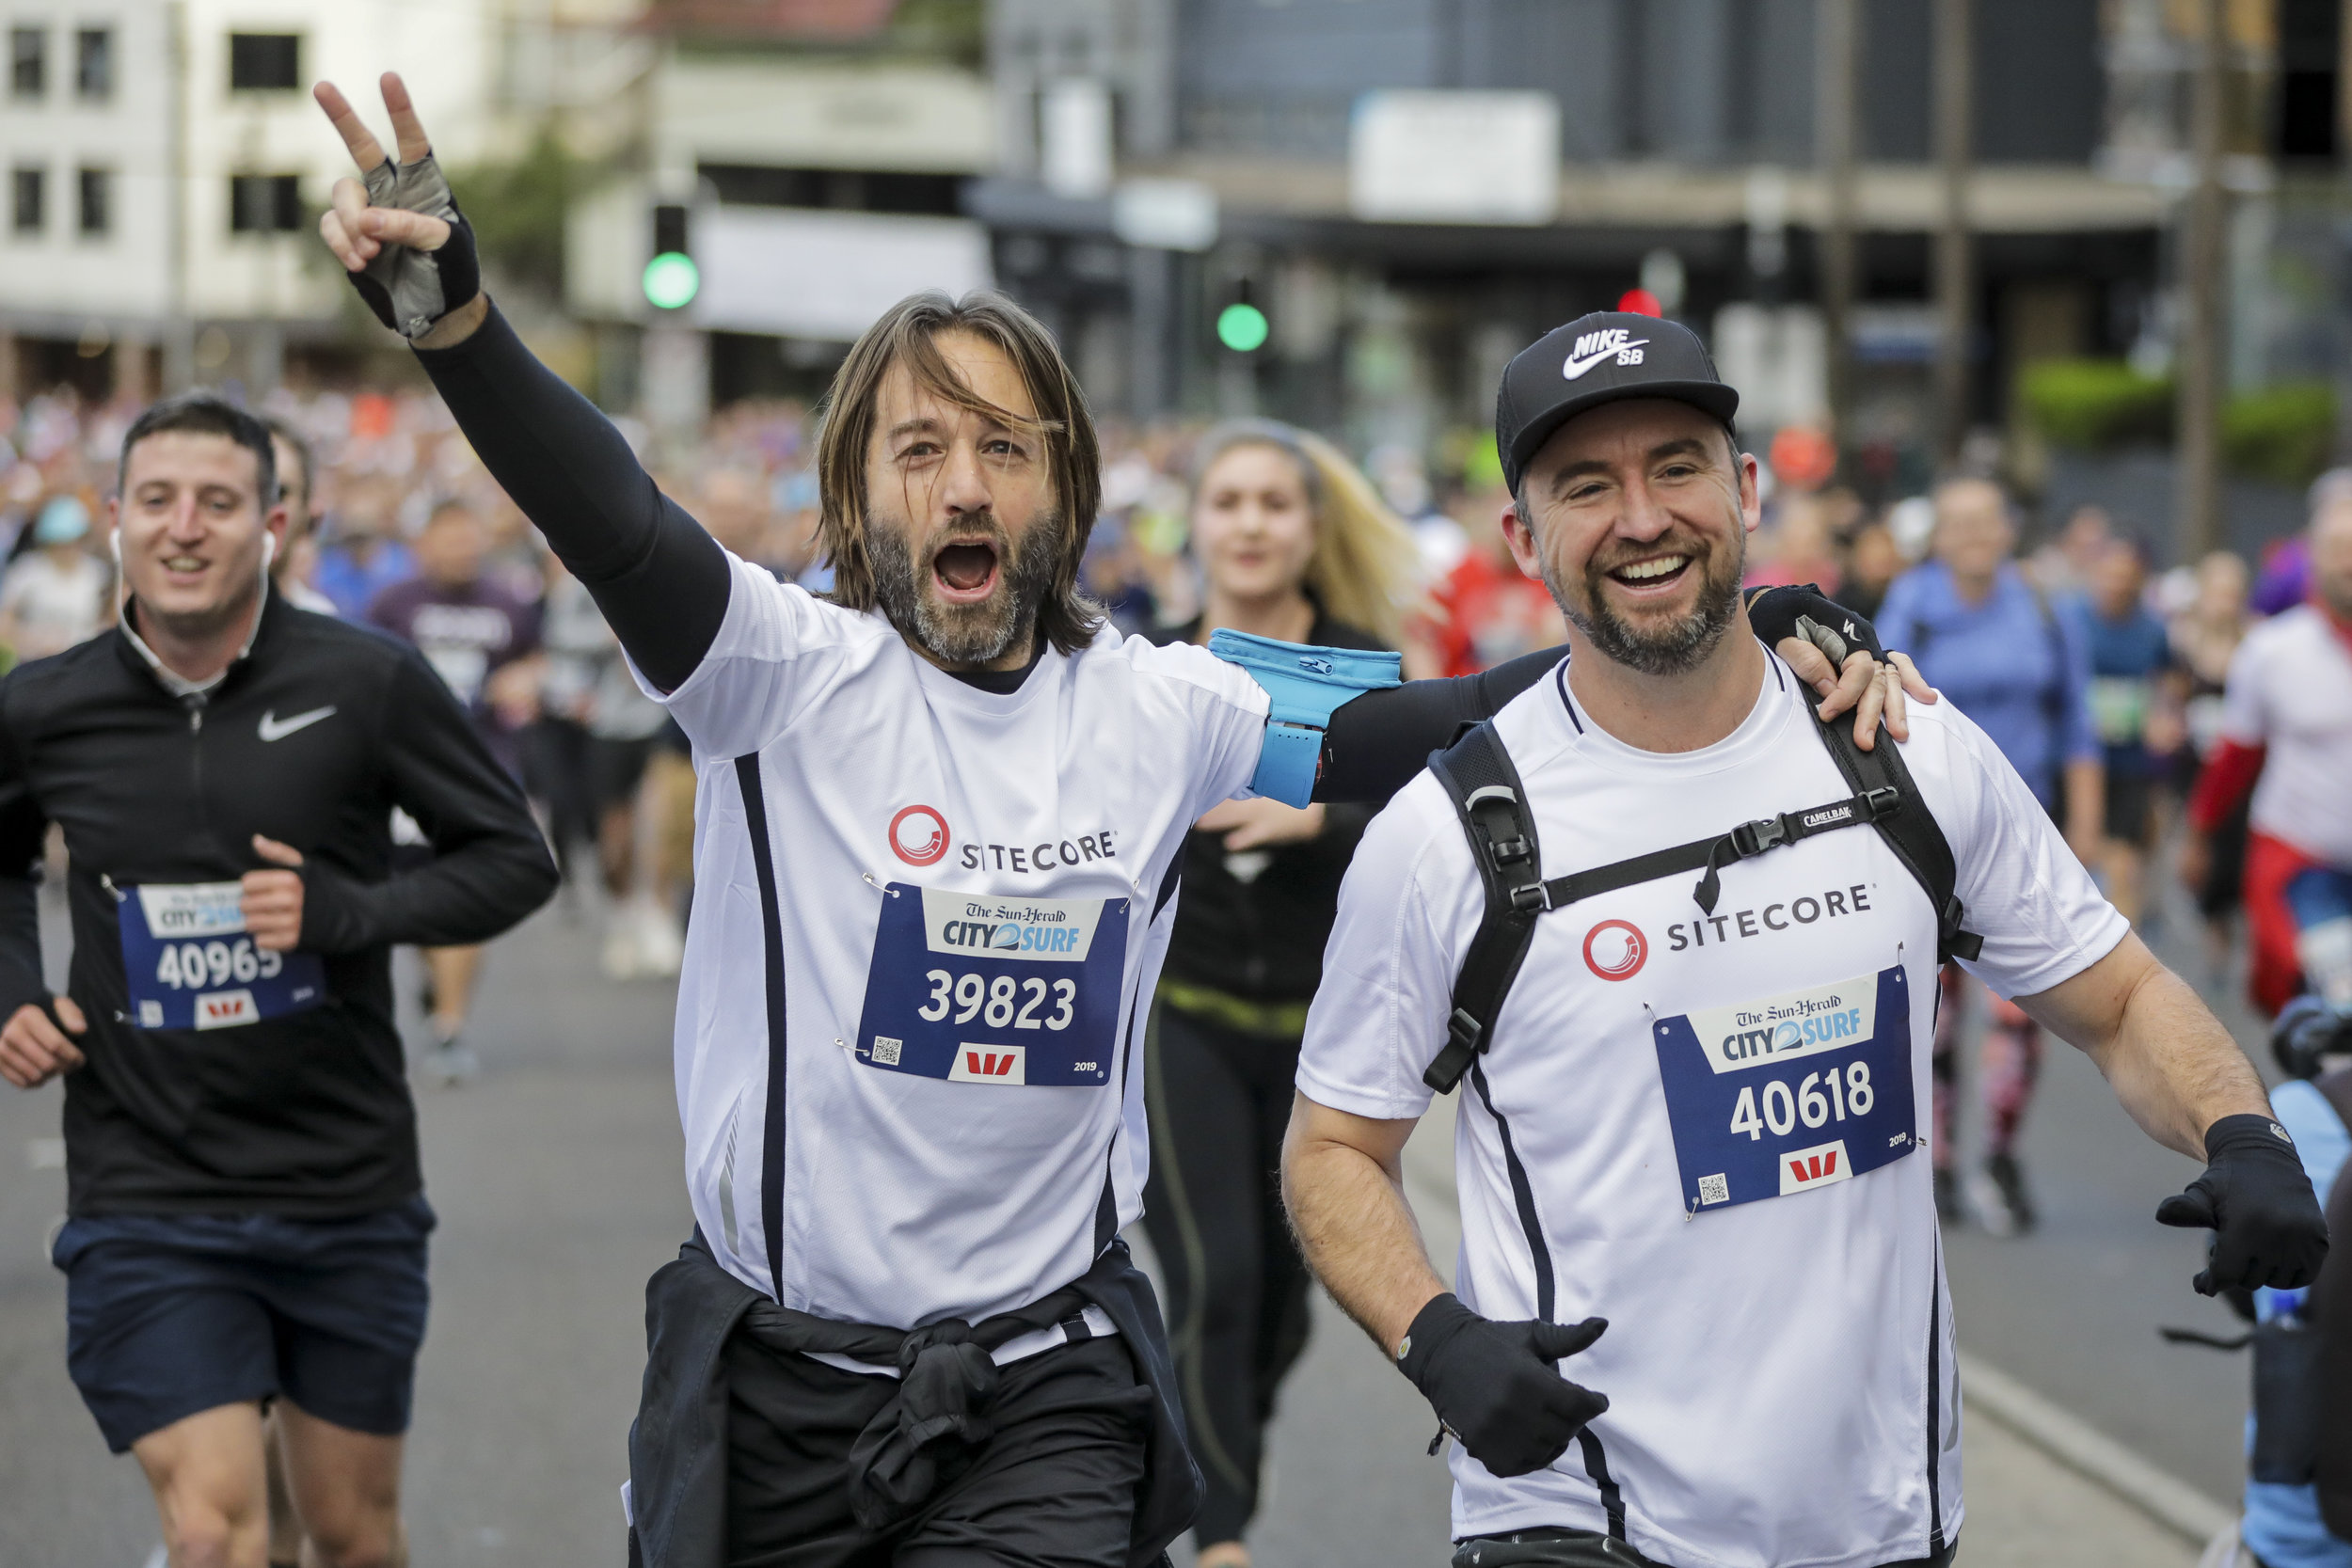 The Sun-Herald City2Surf © Salty Dingo 2019 BH-4762.jpg